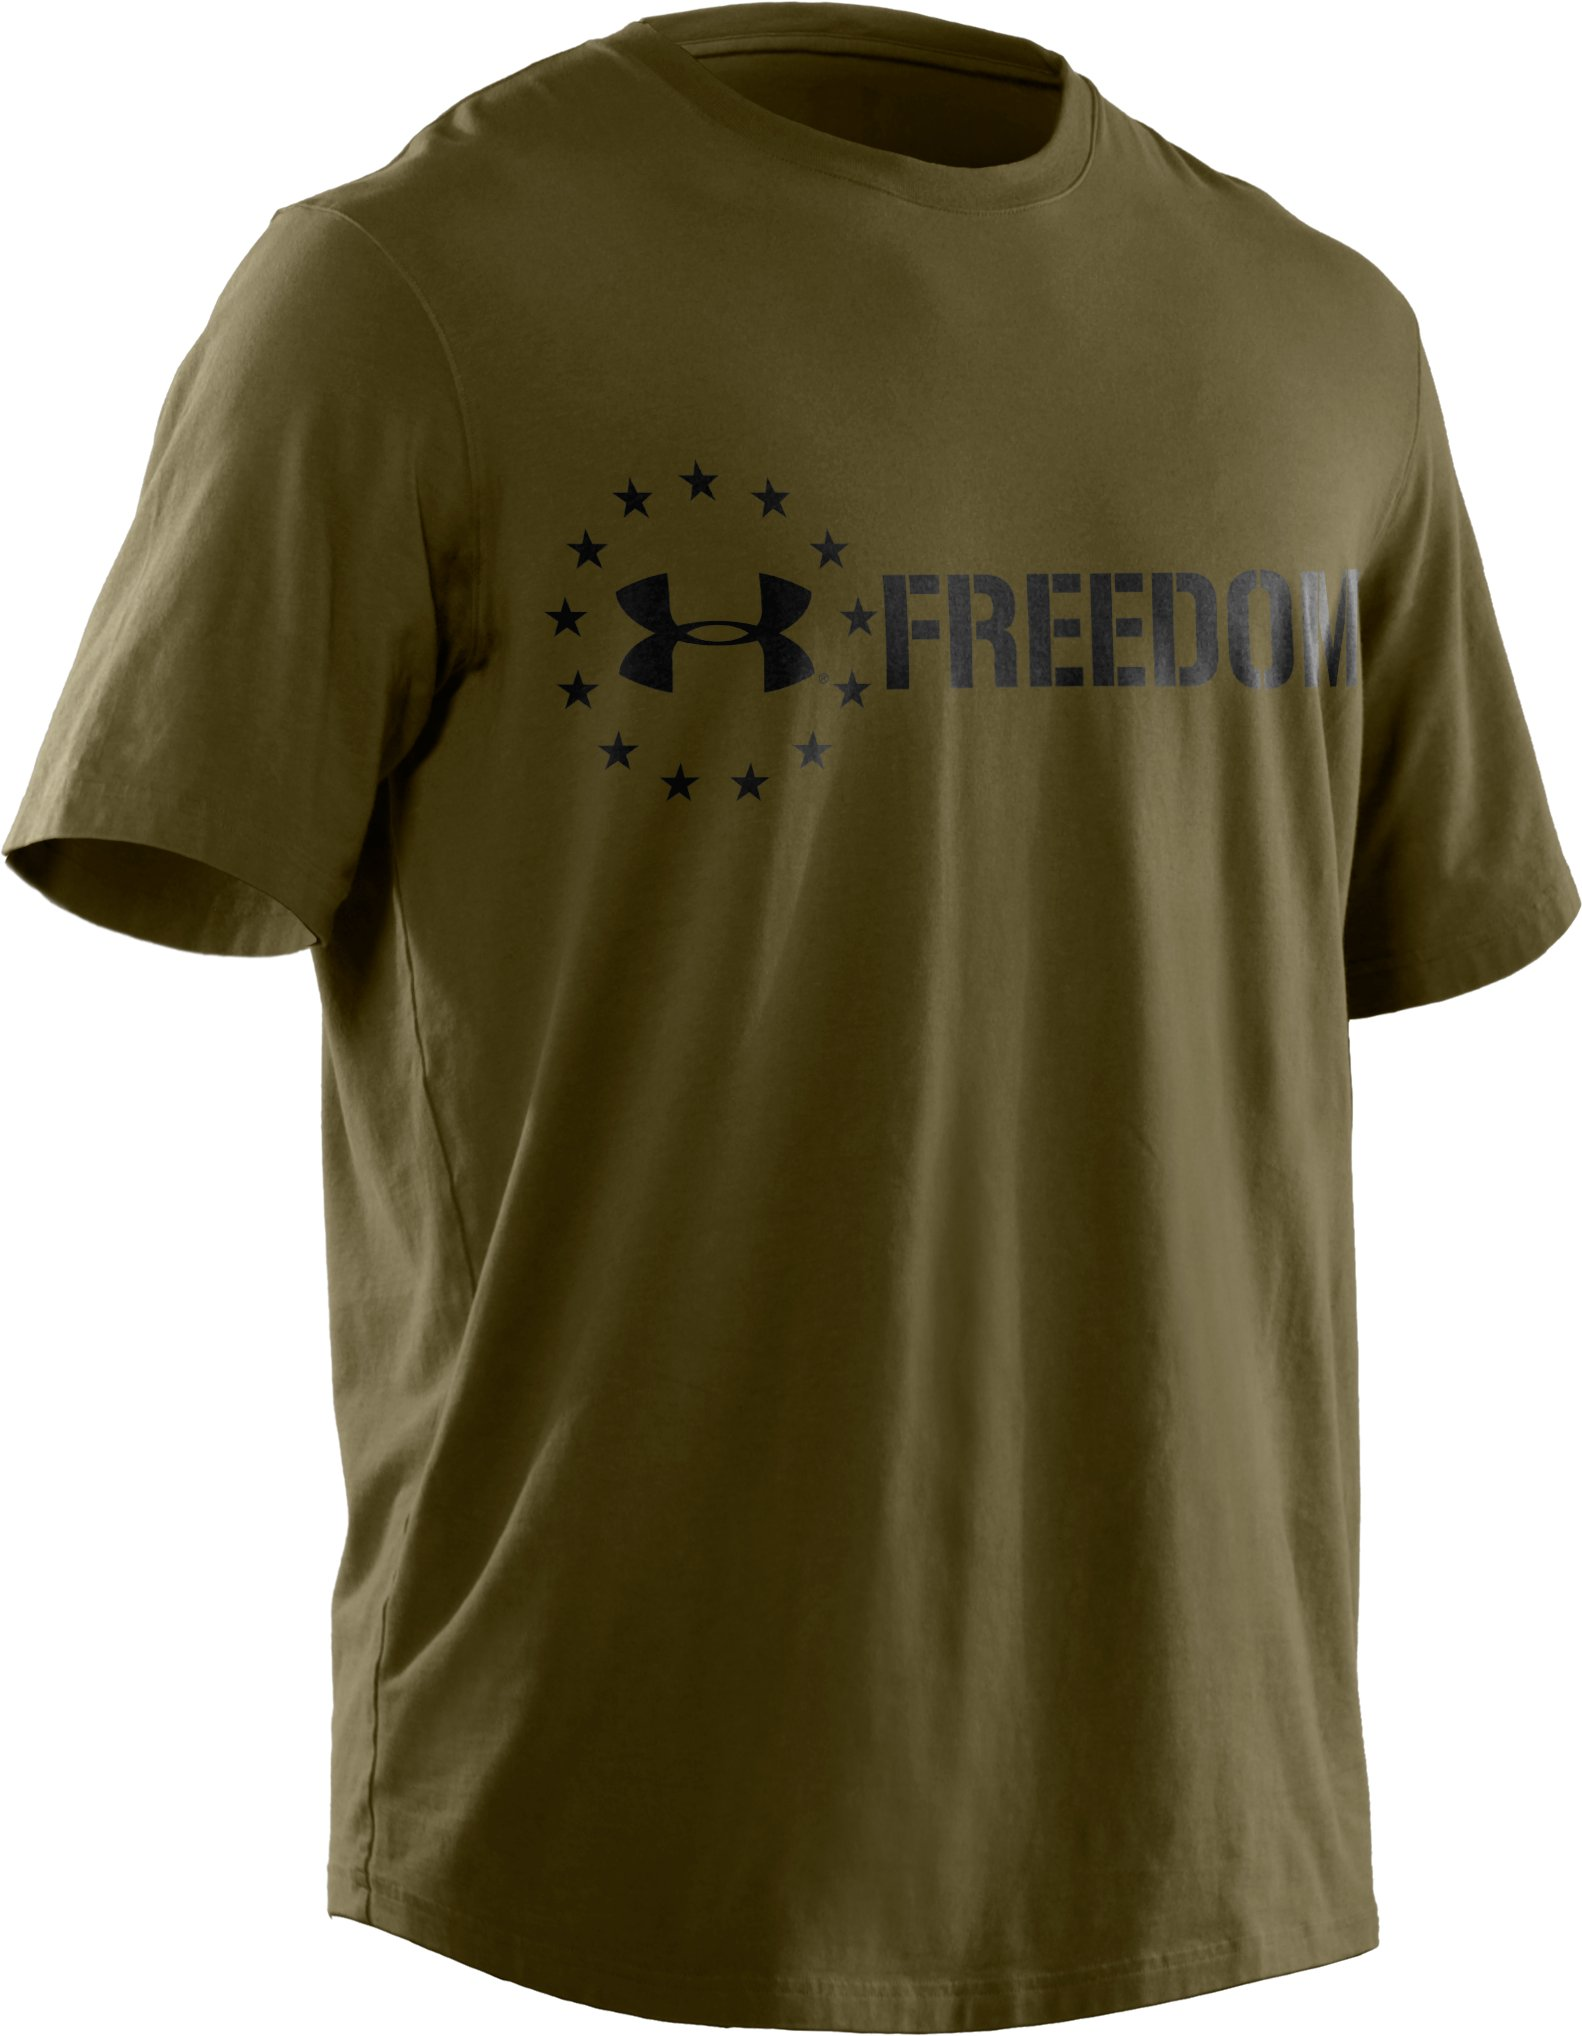 Men's Deployment T-Shirt, Marine OD Green, undefined